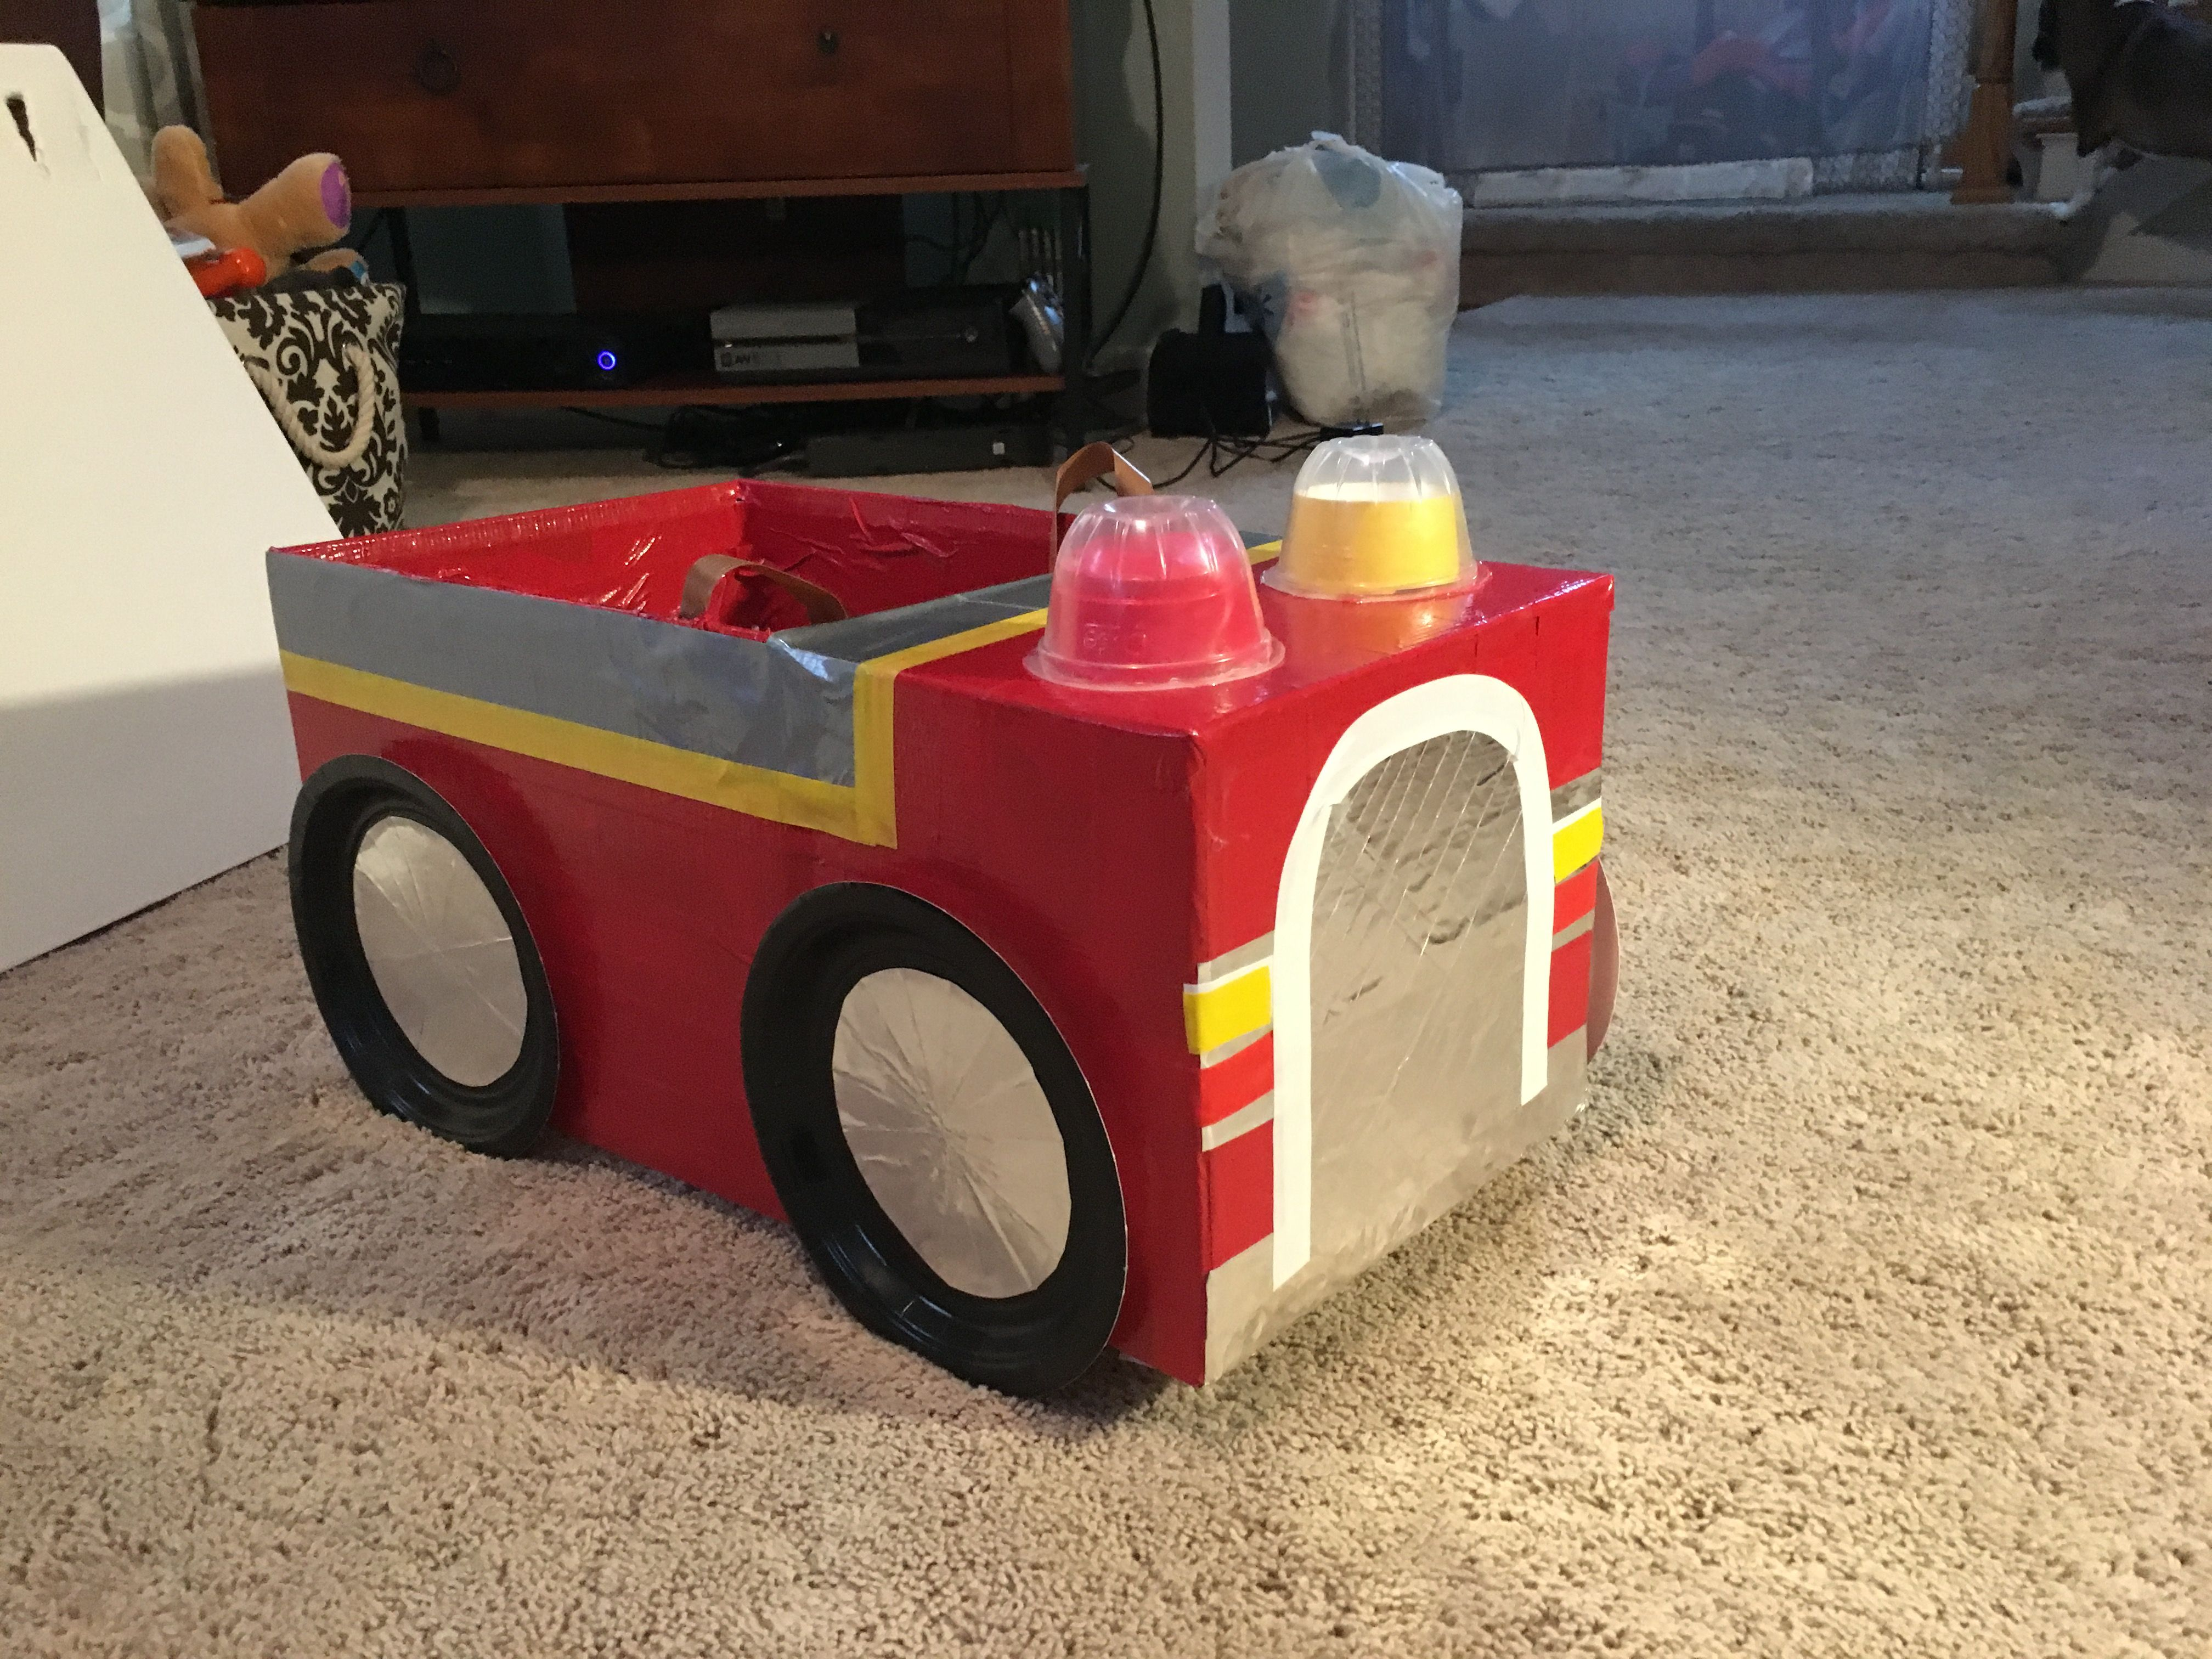 Made Out Of A Diaper Box And Wipes Duct Taped Together With Red Tape Super Cute Halloween Costume Paw Patrol Marshall Fire Dog Fireman